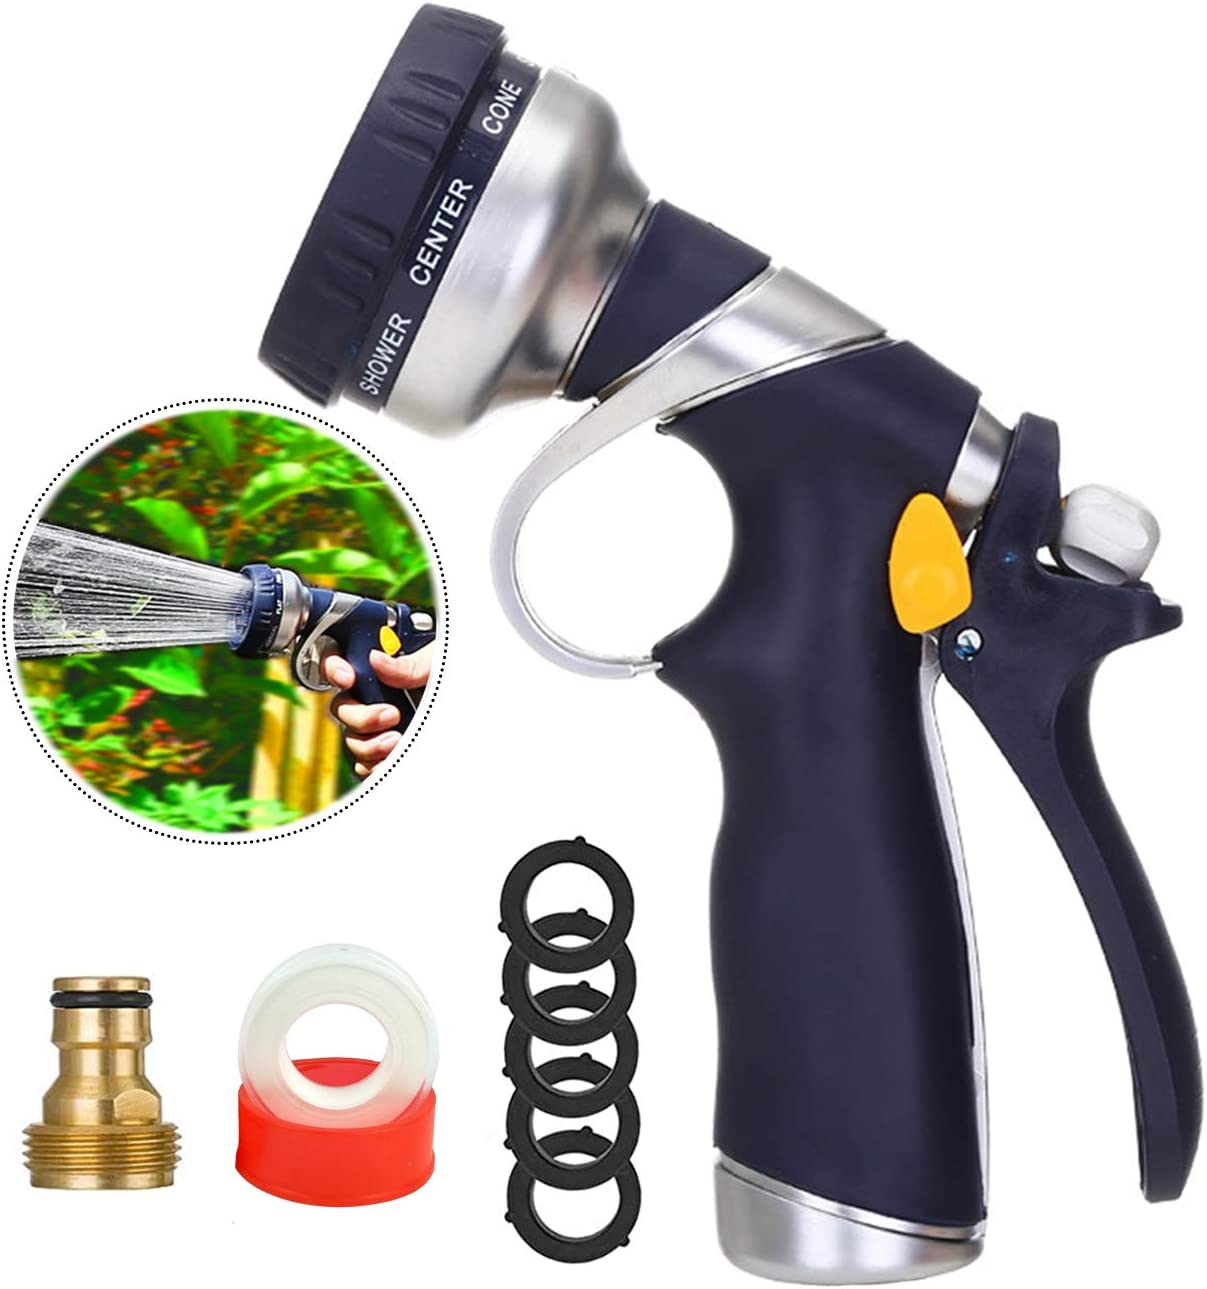 Garden Water Hose Nozzle, Spray Nozzle for Hose, High Pressure Hose Nozzle, Heavy Duty Water Spray 8 Patterns for Watering Plants, Lawns, Car Washing & Pets Showering